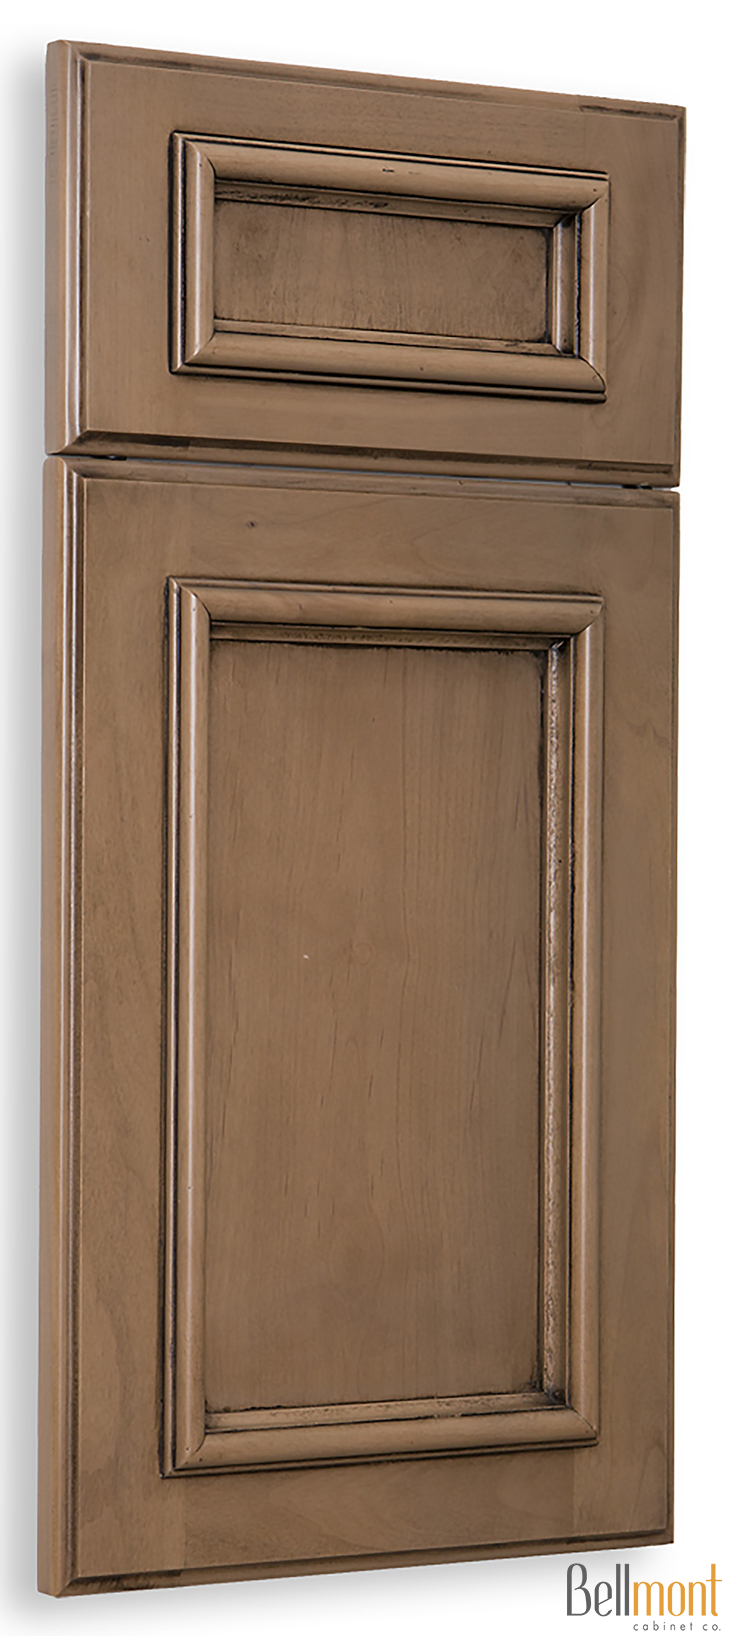 Bellmont Cabinet Co. 1900 Series